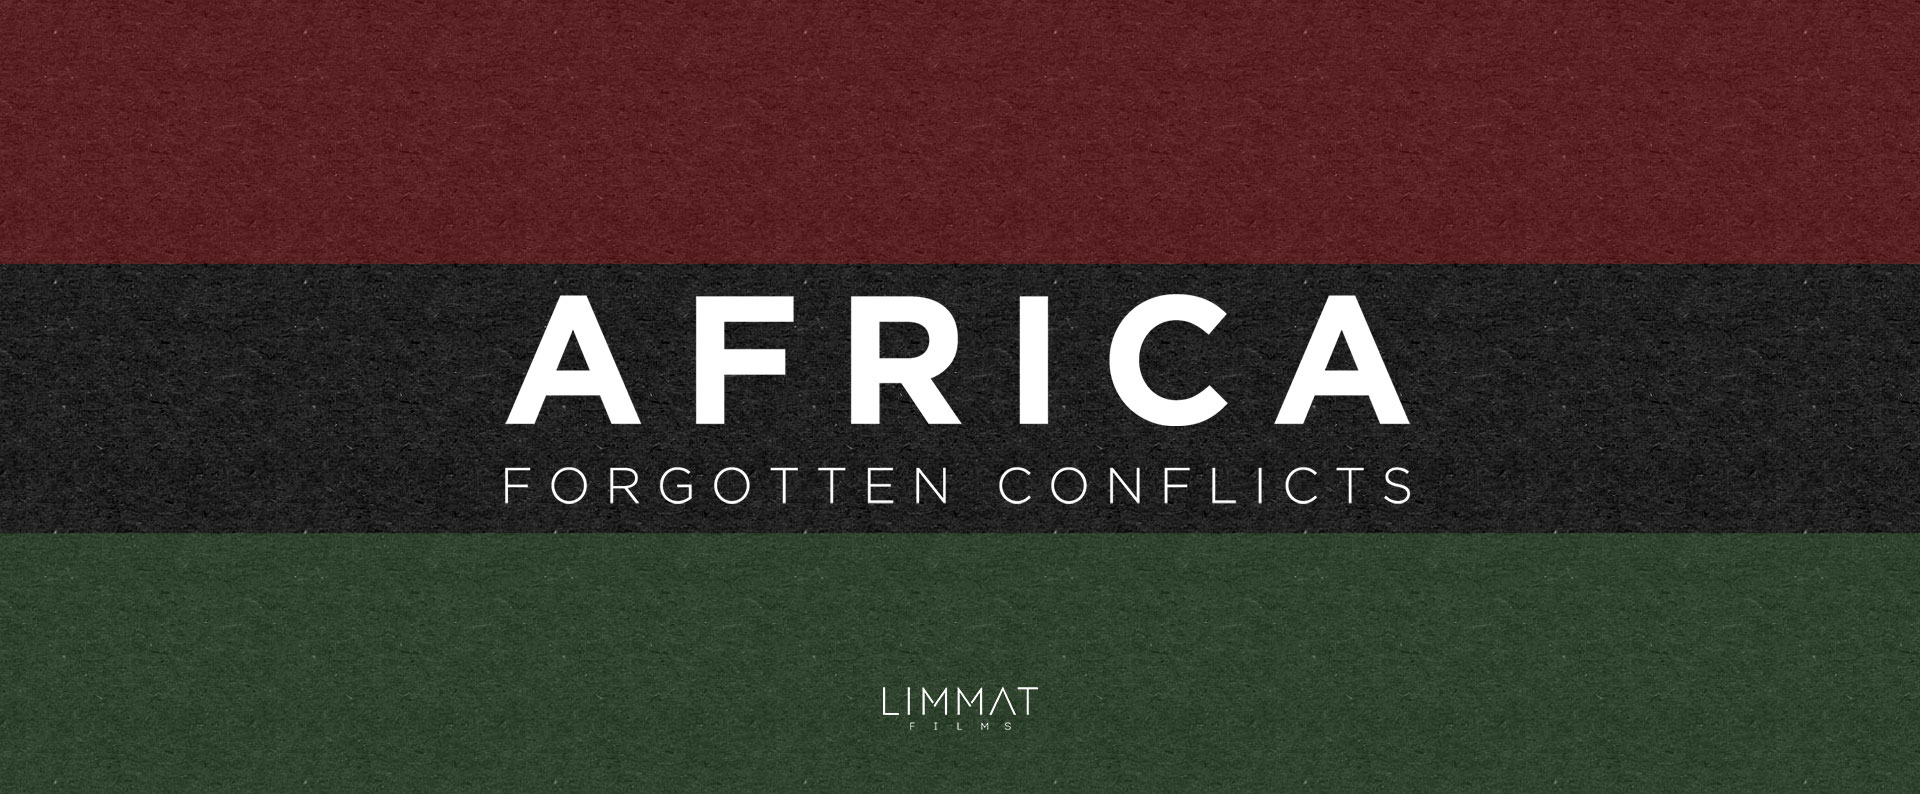 Africa: Forgotten Conflicts